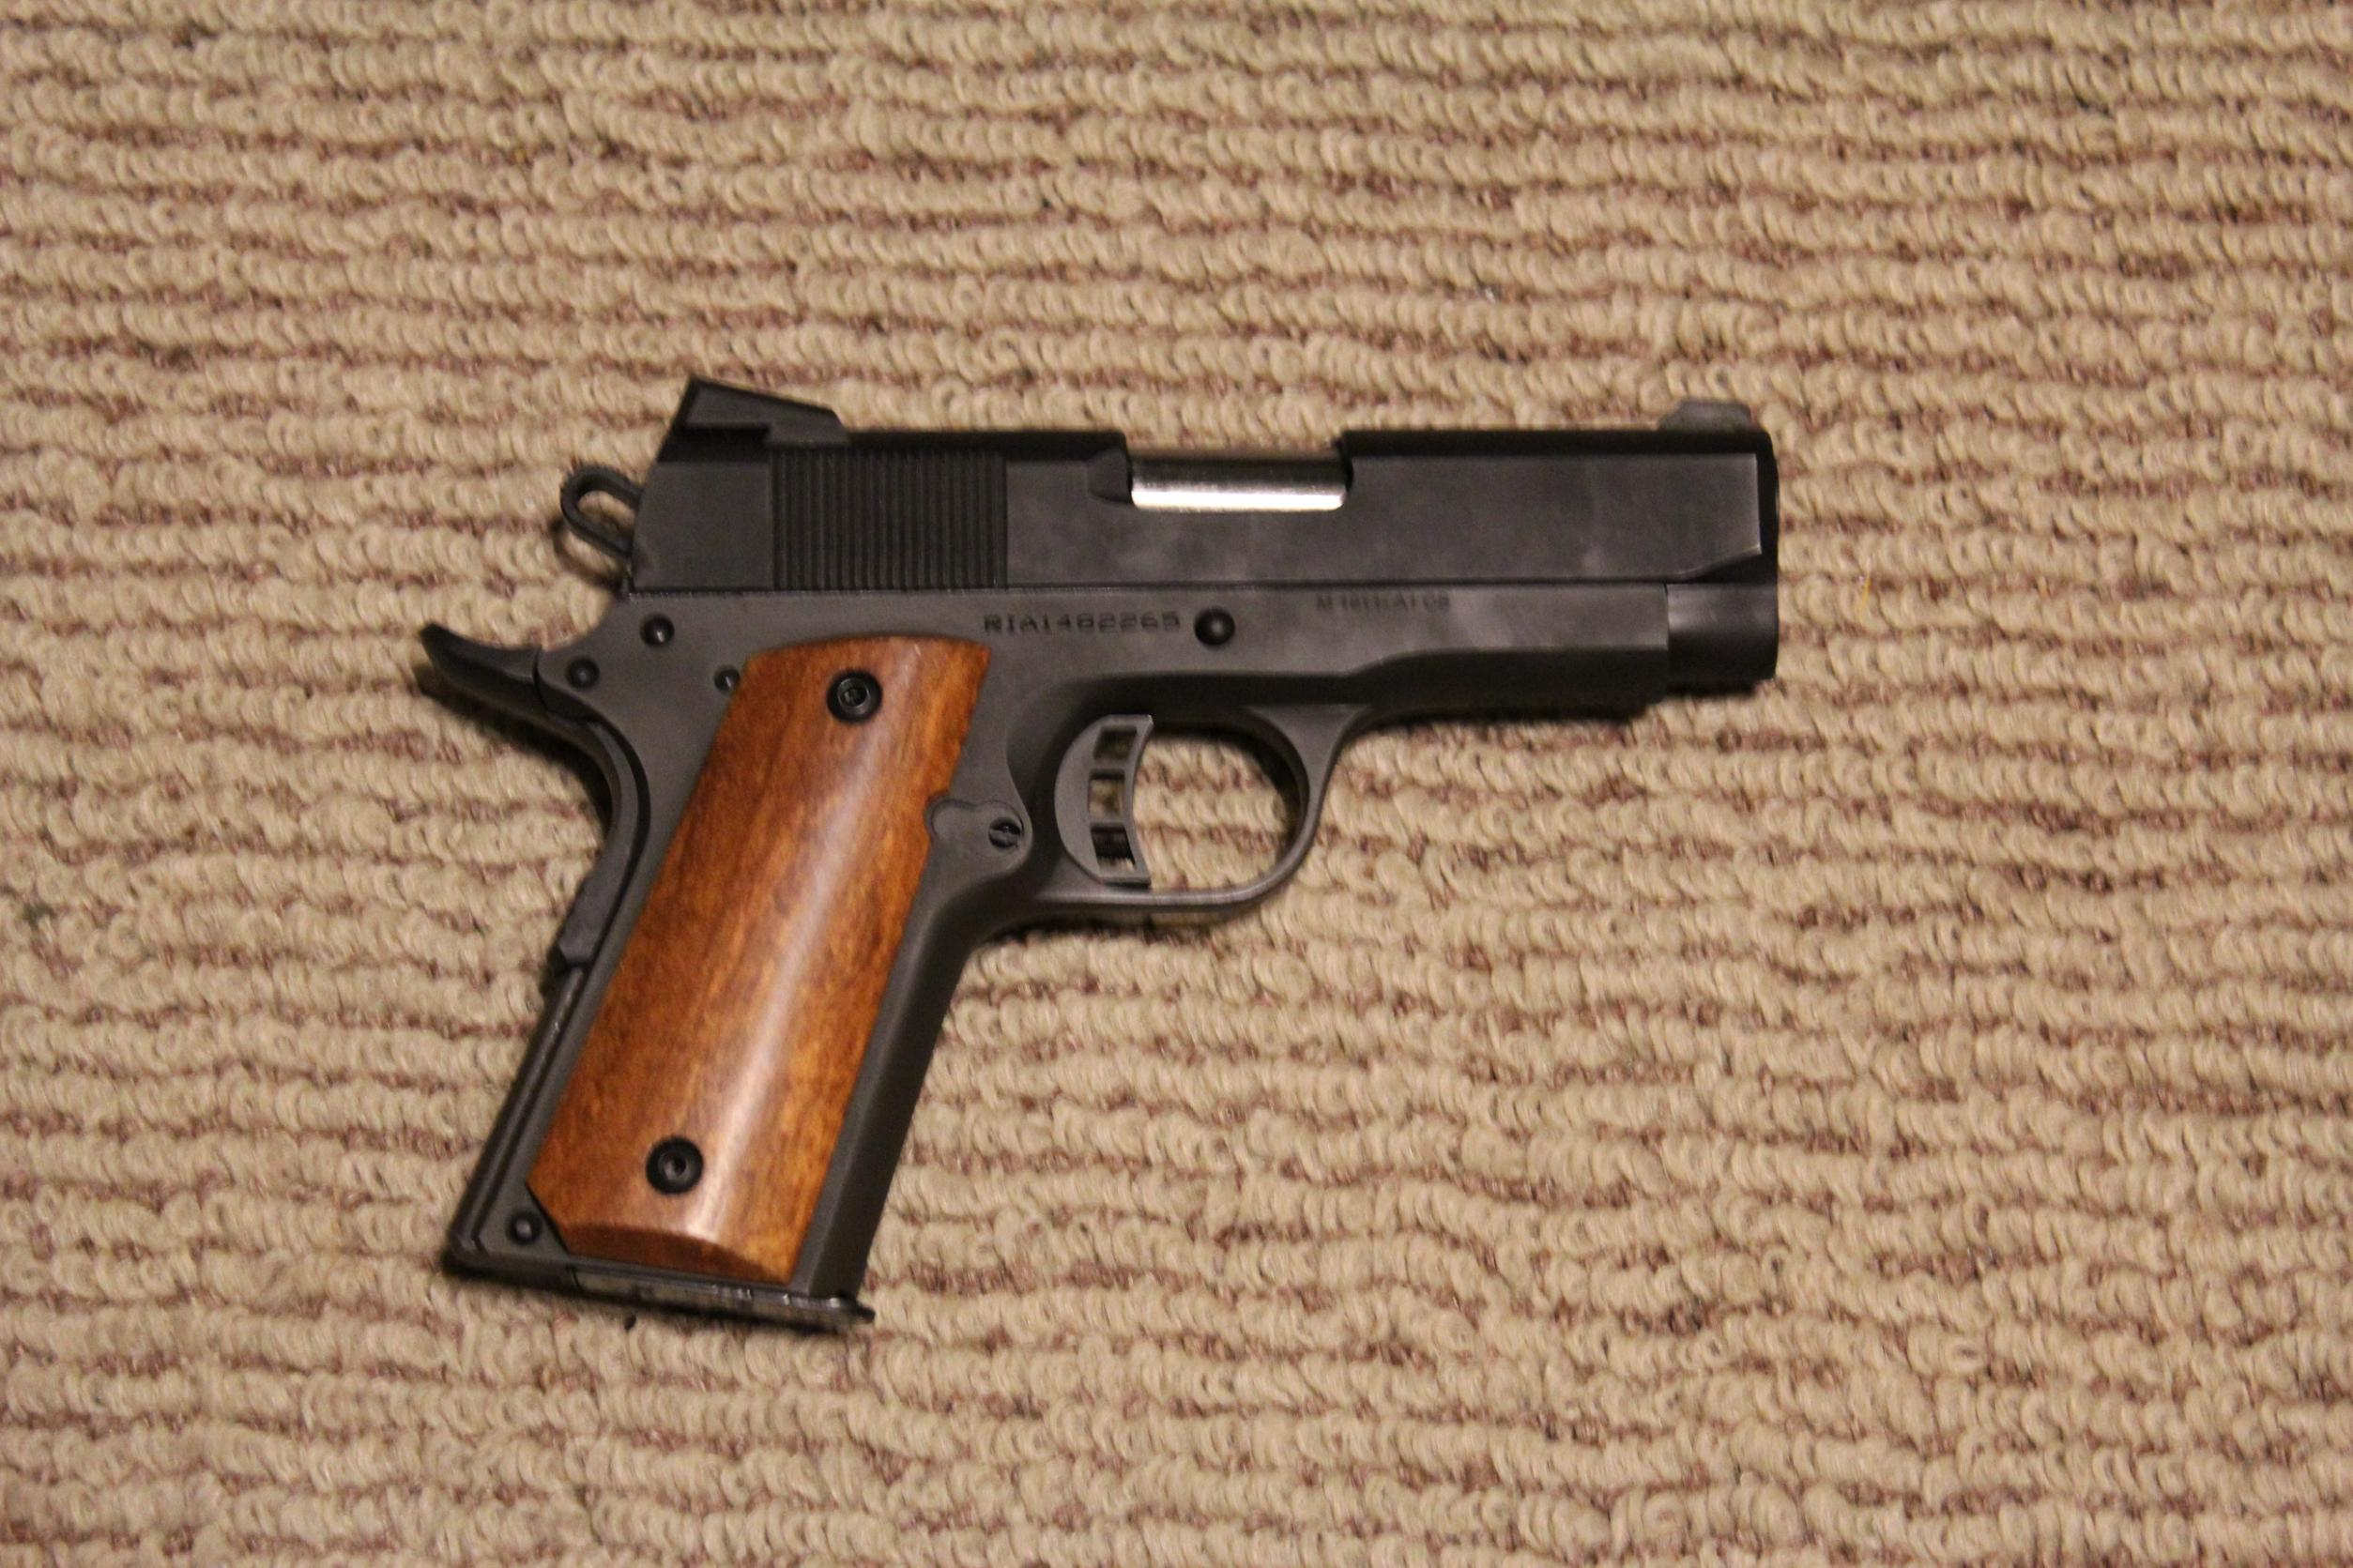 I knew I should not have bought  that 1911-ria_r.jpg